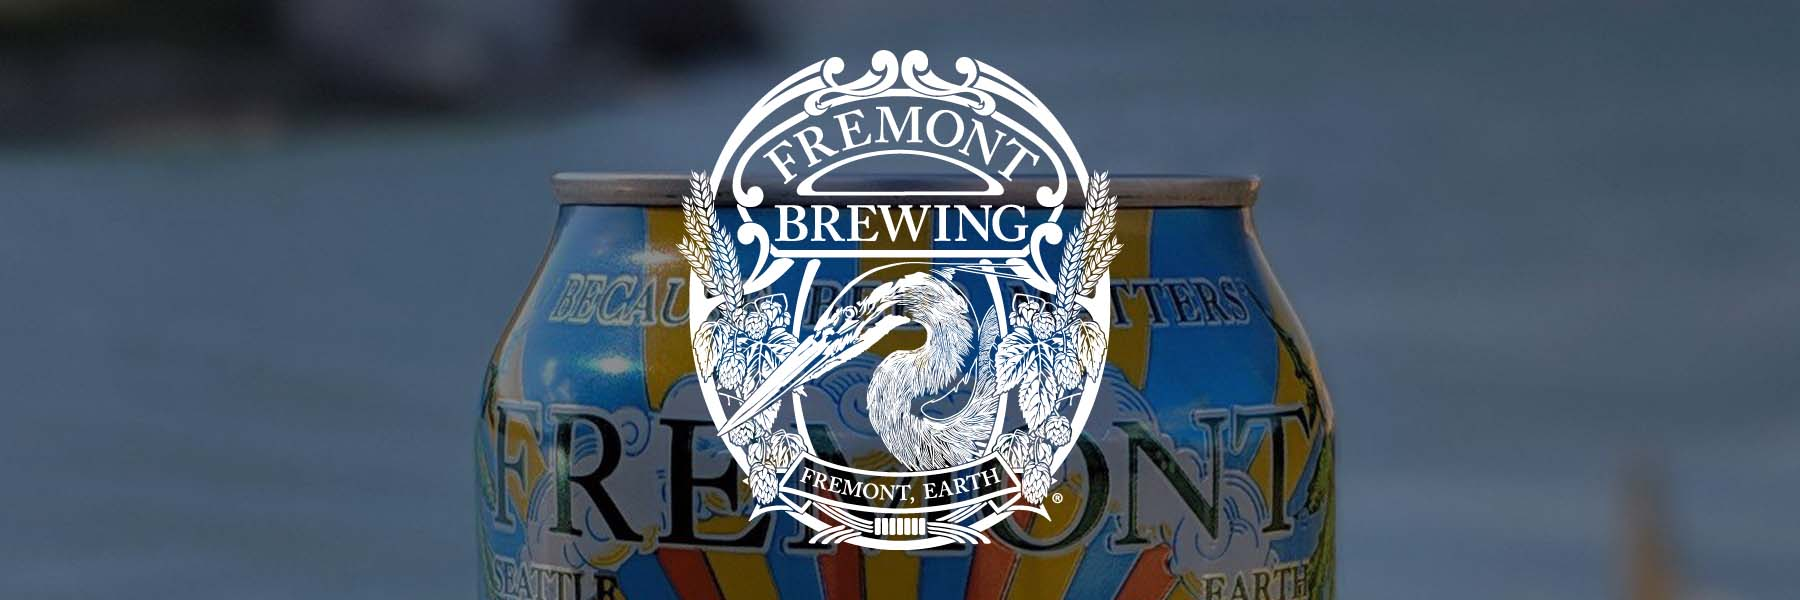 Fremont Brewing | 3.5 bbl Pilot Brewhouse